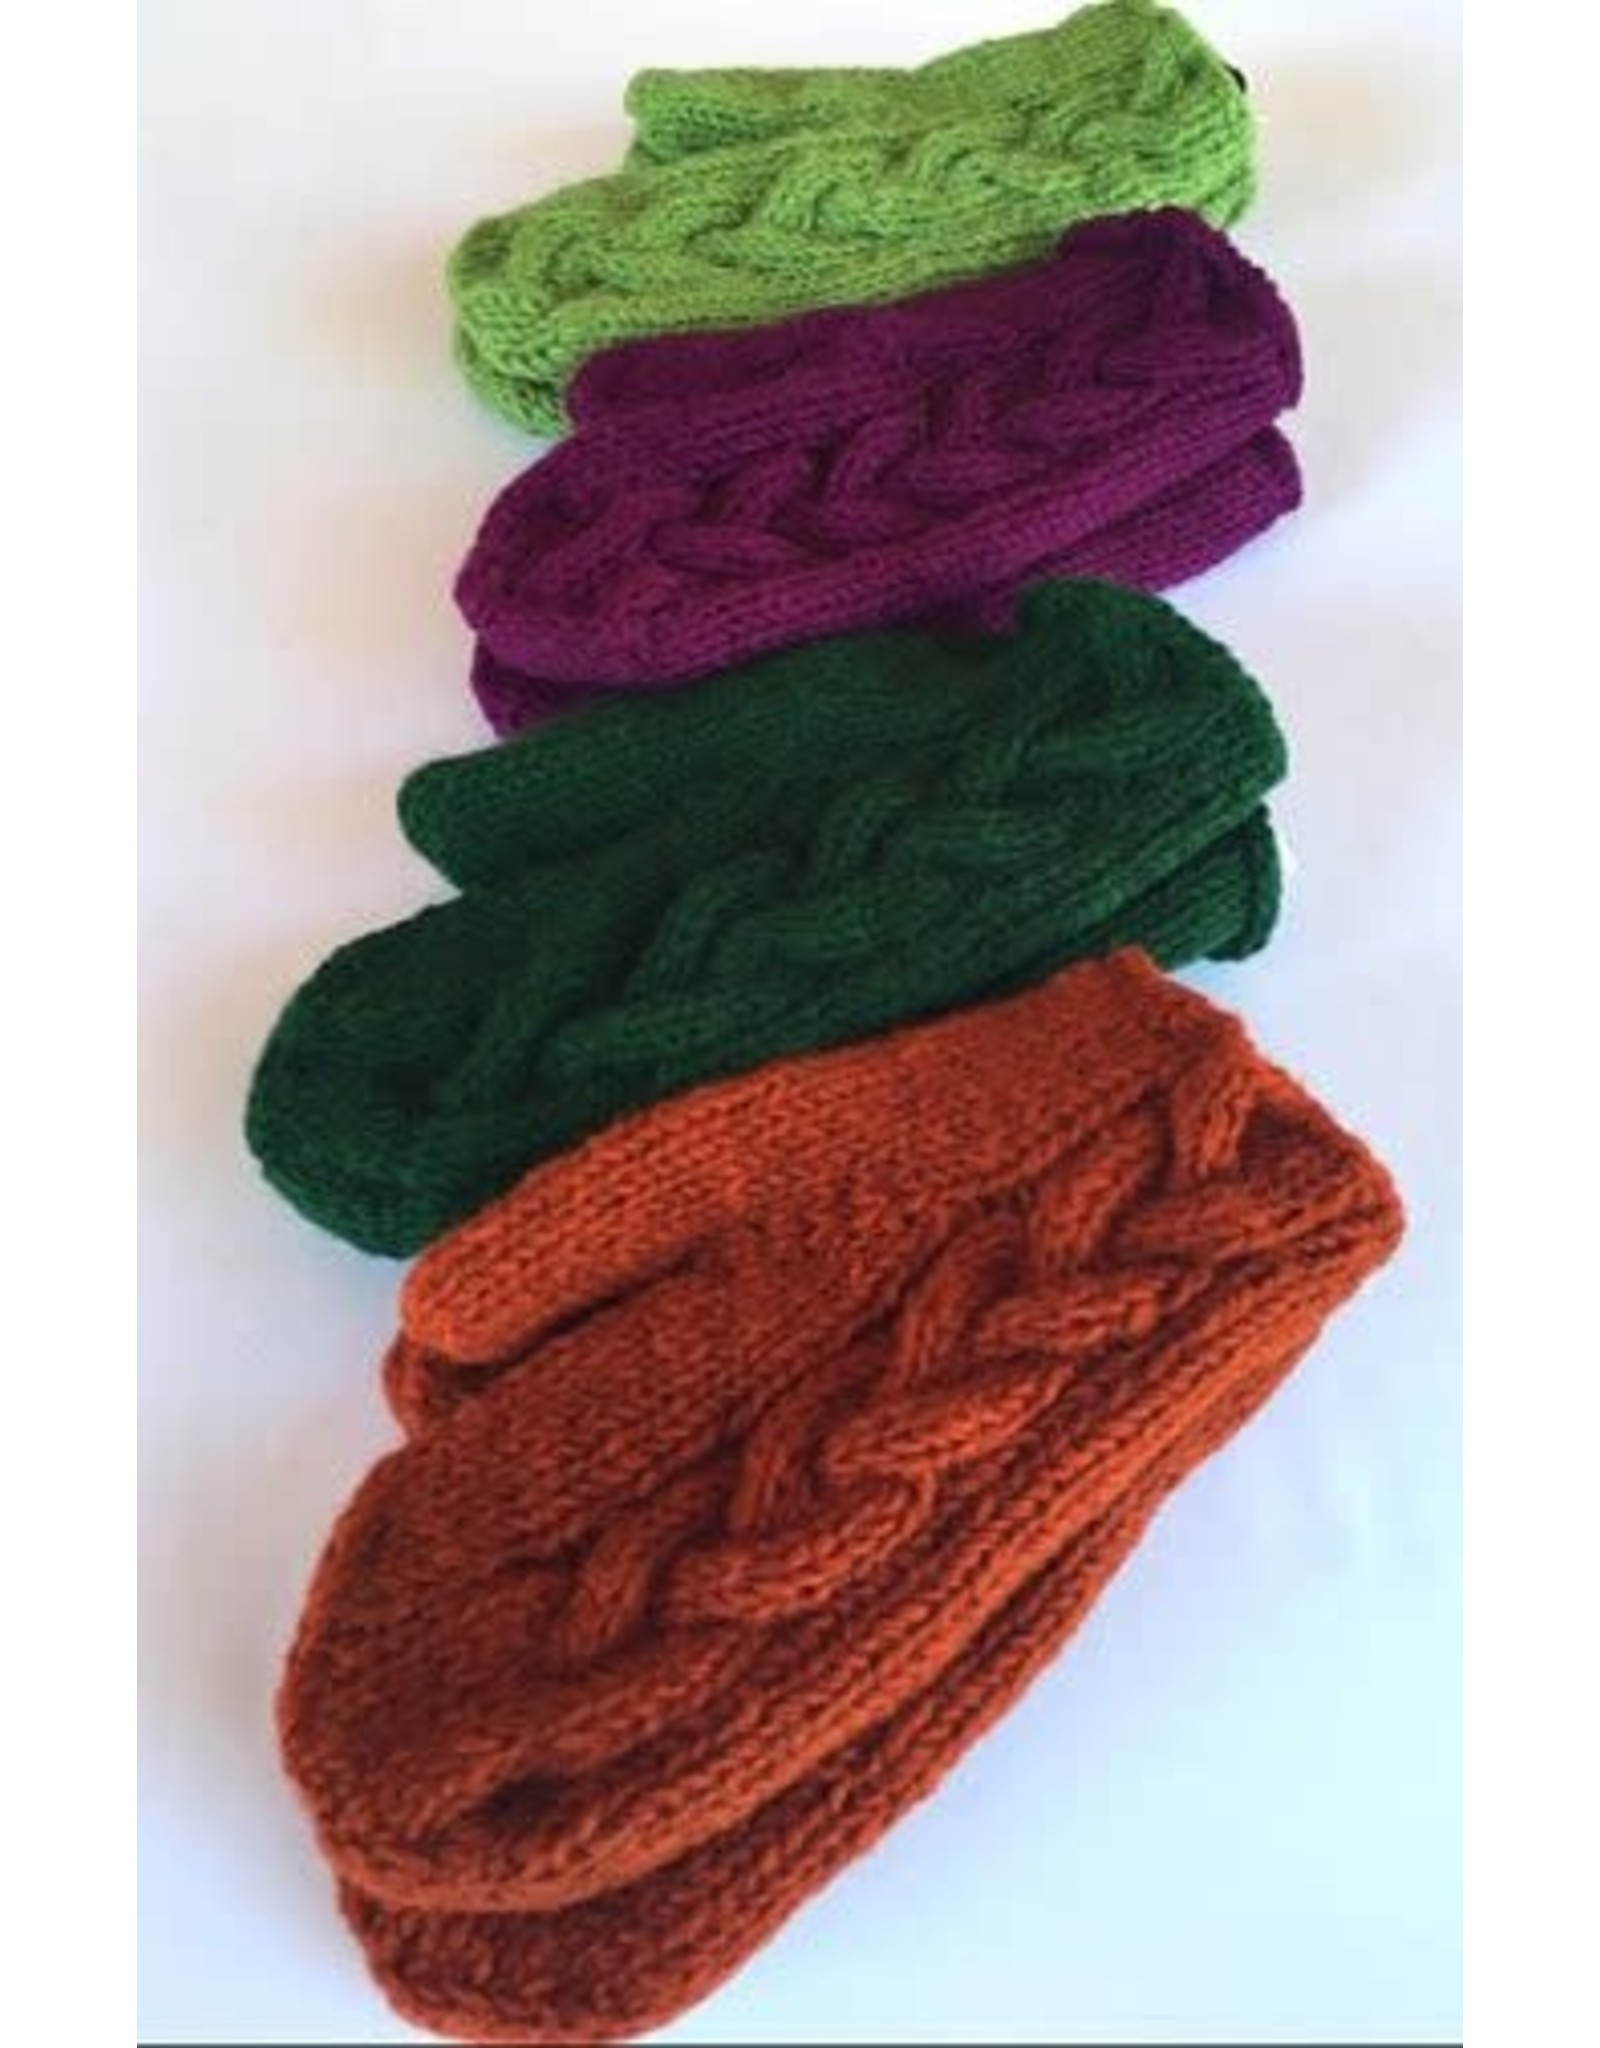 Ganesh Himal Cable knit wool mitten, lined. Nepal